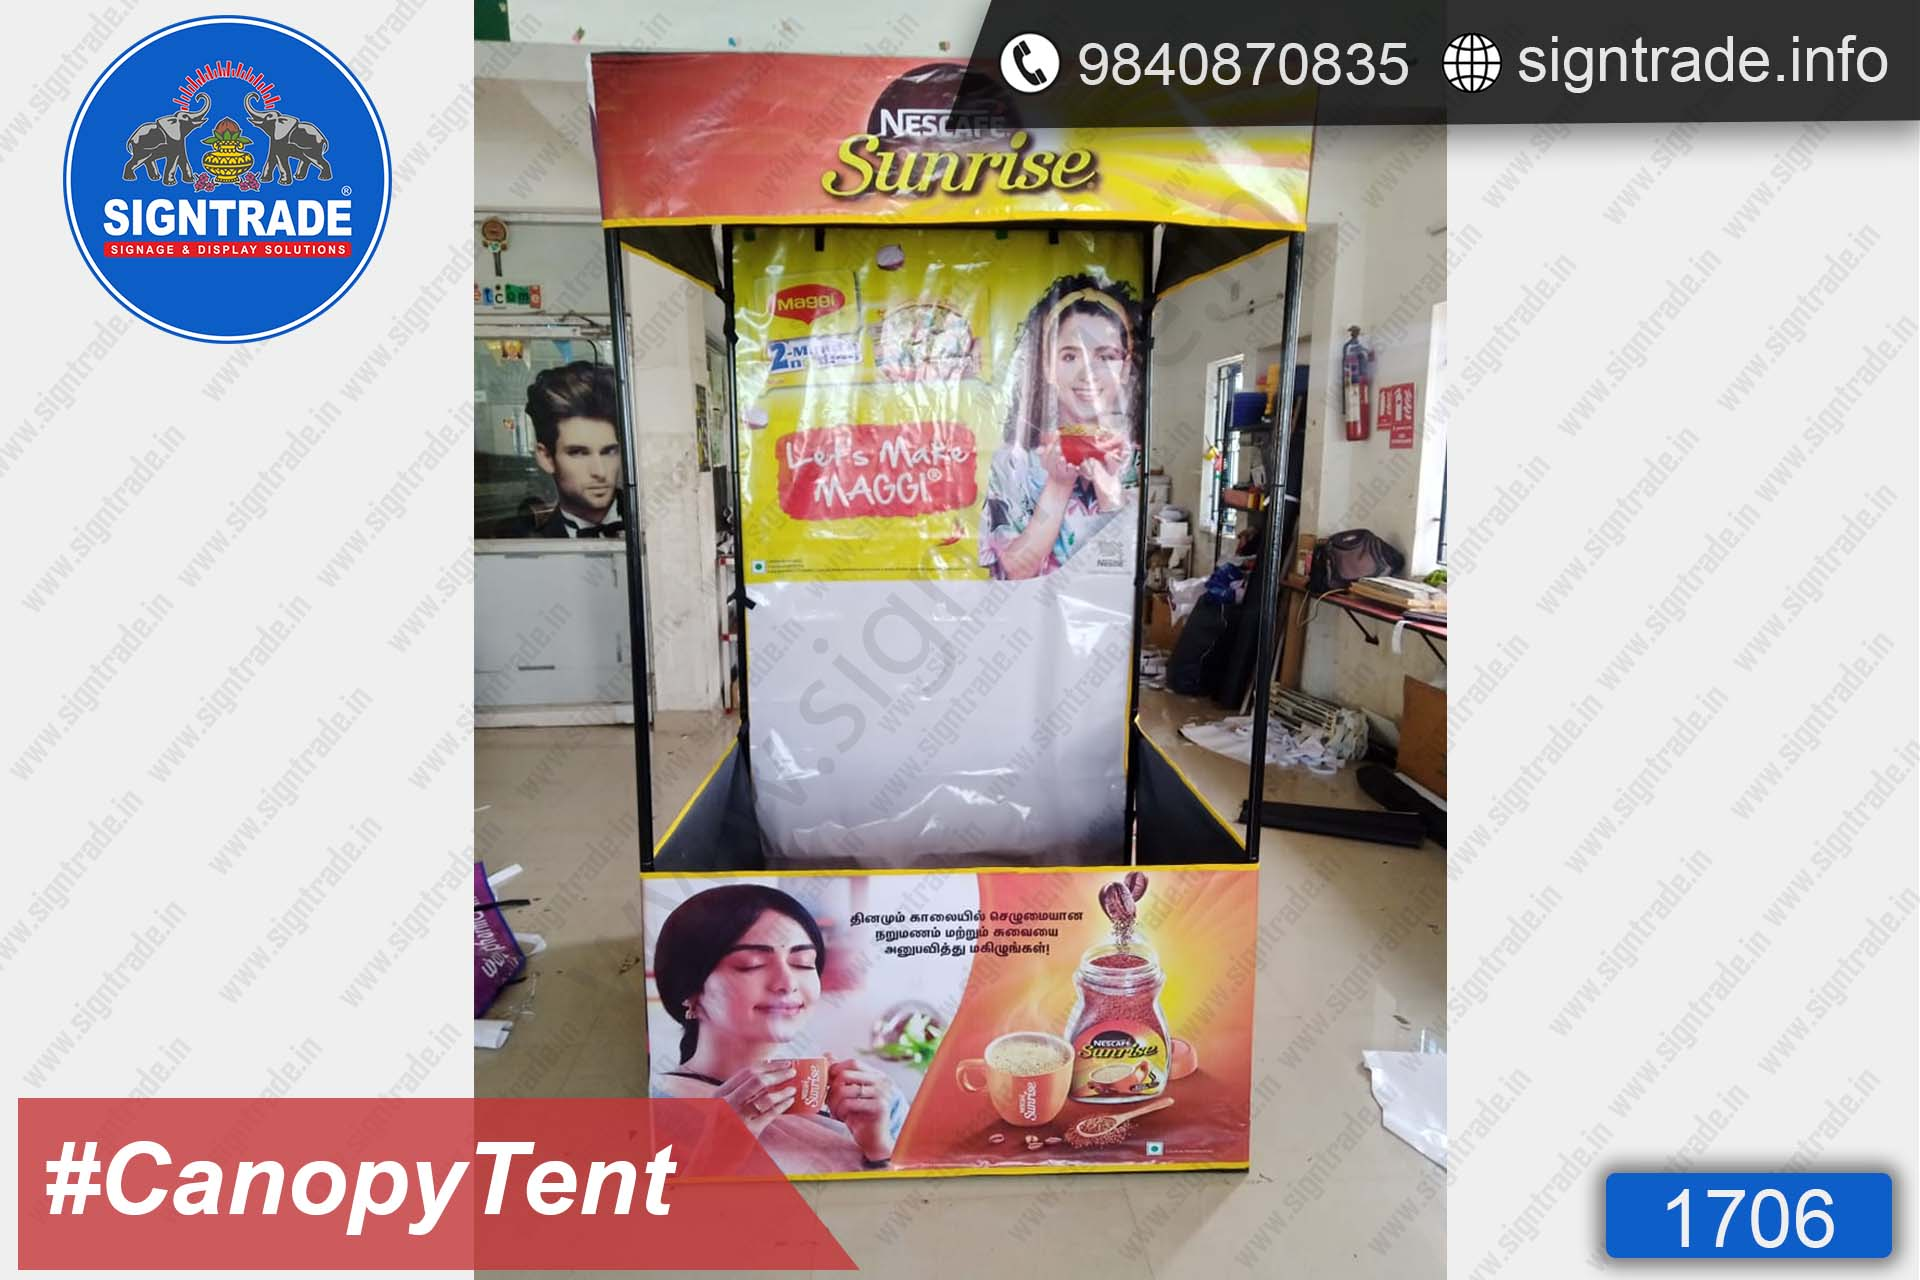 Nescafe Sunrise - Canopy Tent - SIGNTRADE - Promotional Canopy Tent Manufacturers in Chennai